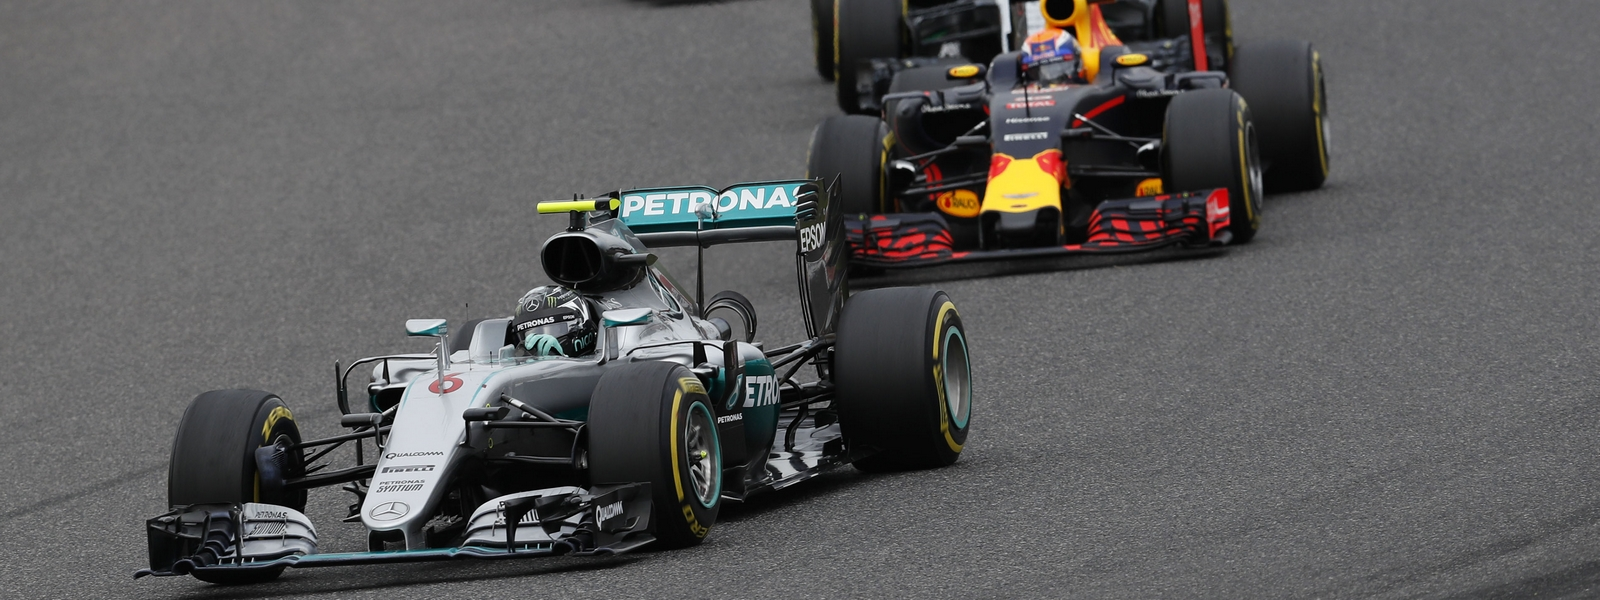 Motorsports: FIA Formula One World Championship 2016, Grand Prix of Japan,  #6 Nico Rosberg (GER, Mercedes AMG Petronas Formula One Team), #33 Max Verstappen (NLD, Red Bull Racing), #11 Sergio Perez (MEX, Sahara Force India F1 Team),  *** Local Caption *** +++ www.hoch-zwei.net +++ copyright: HOCH ZWEI +++